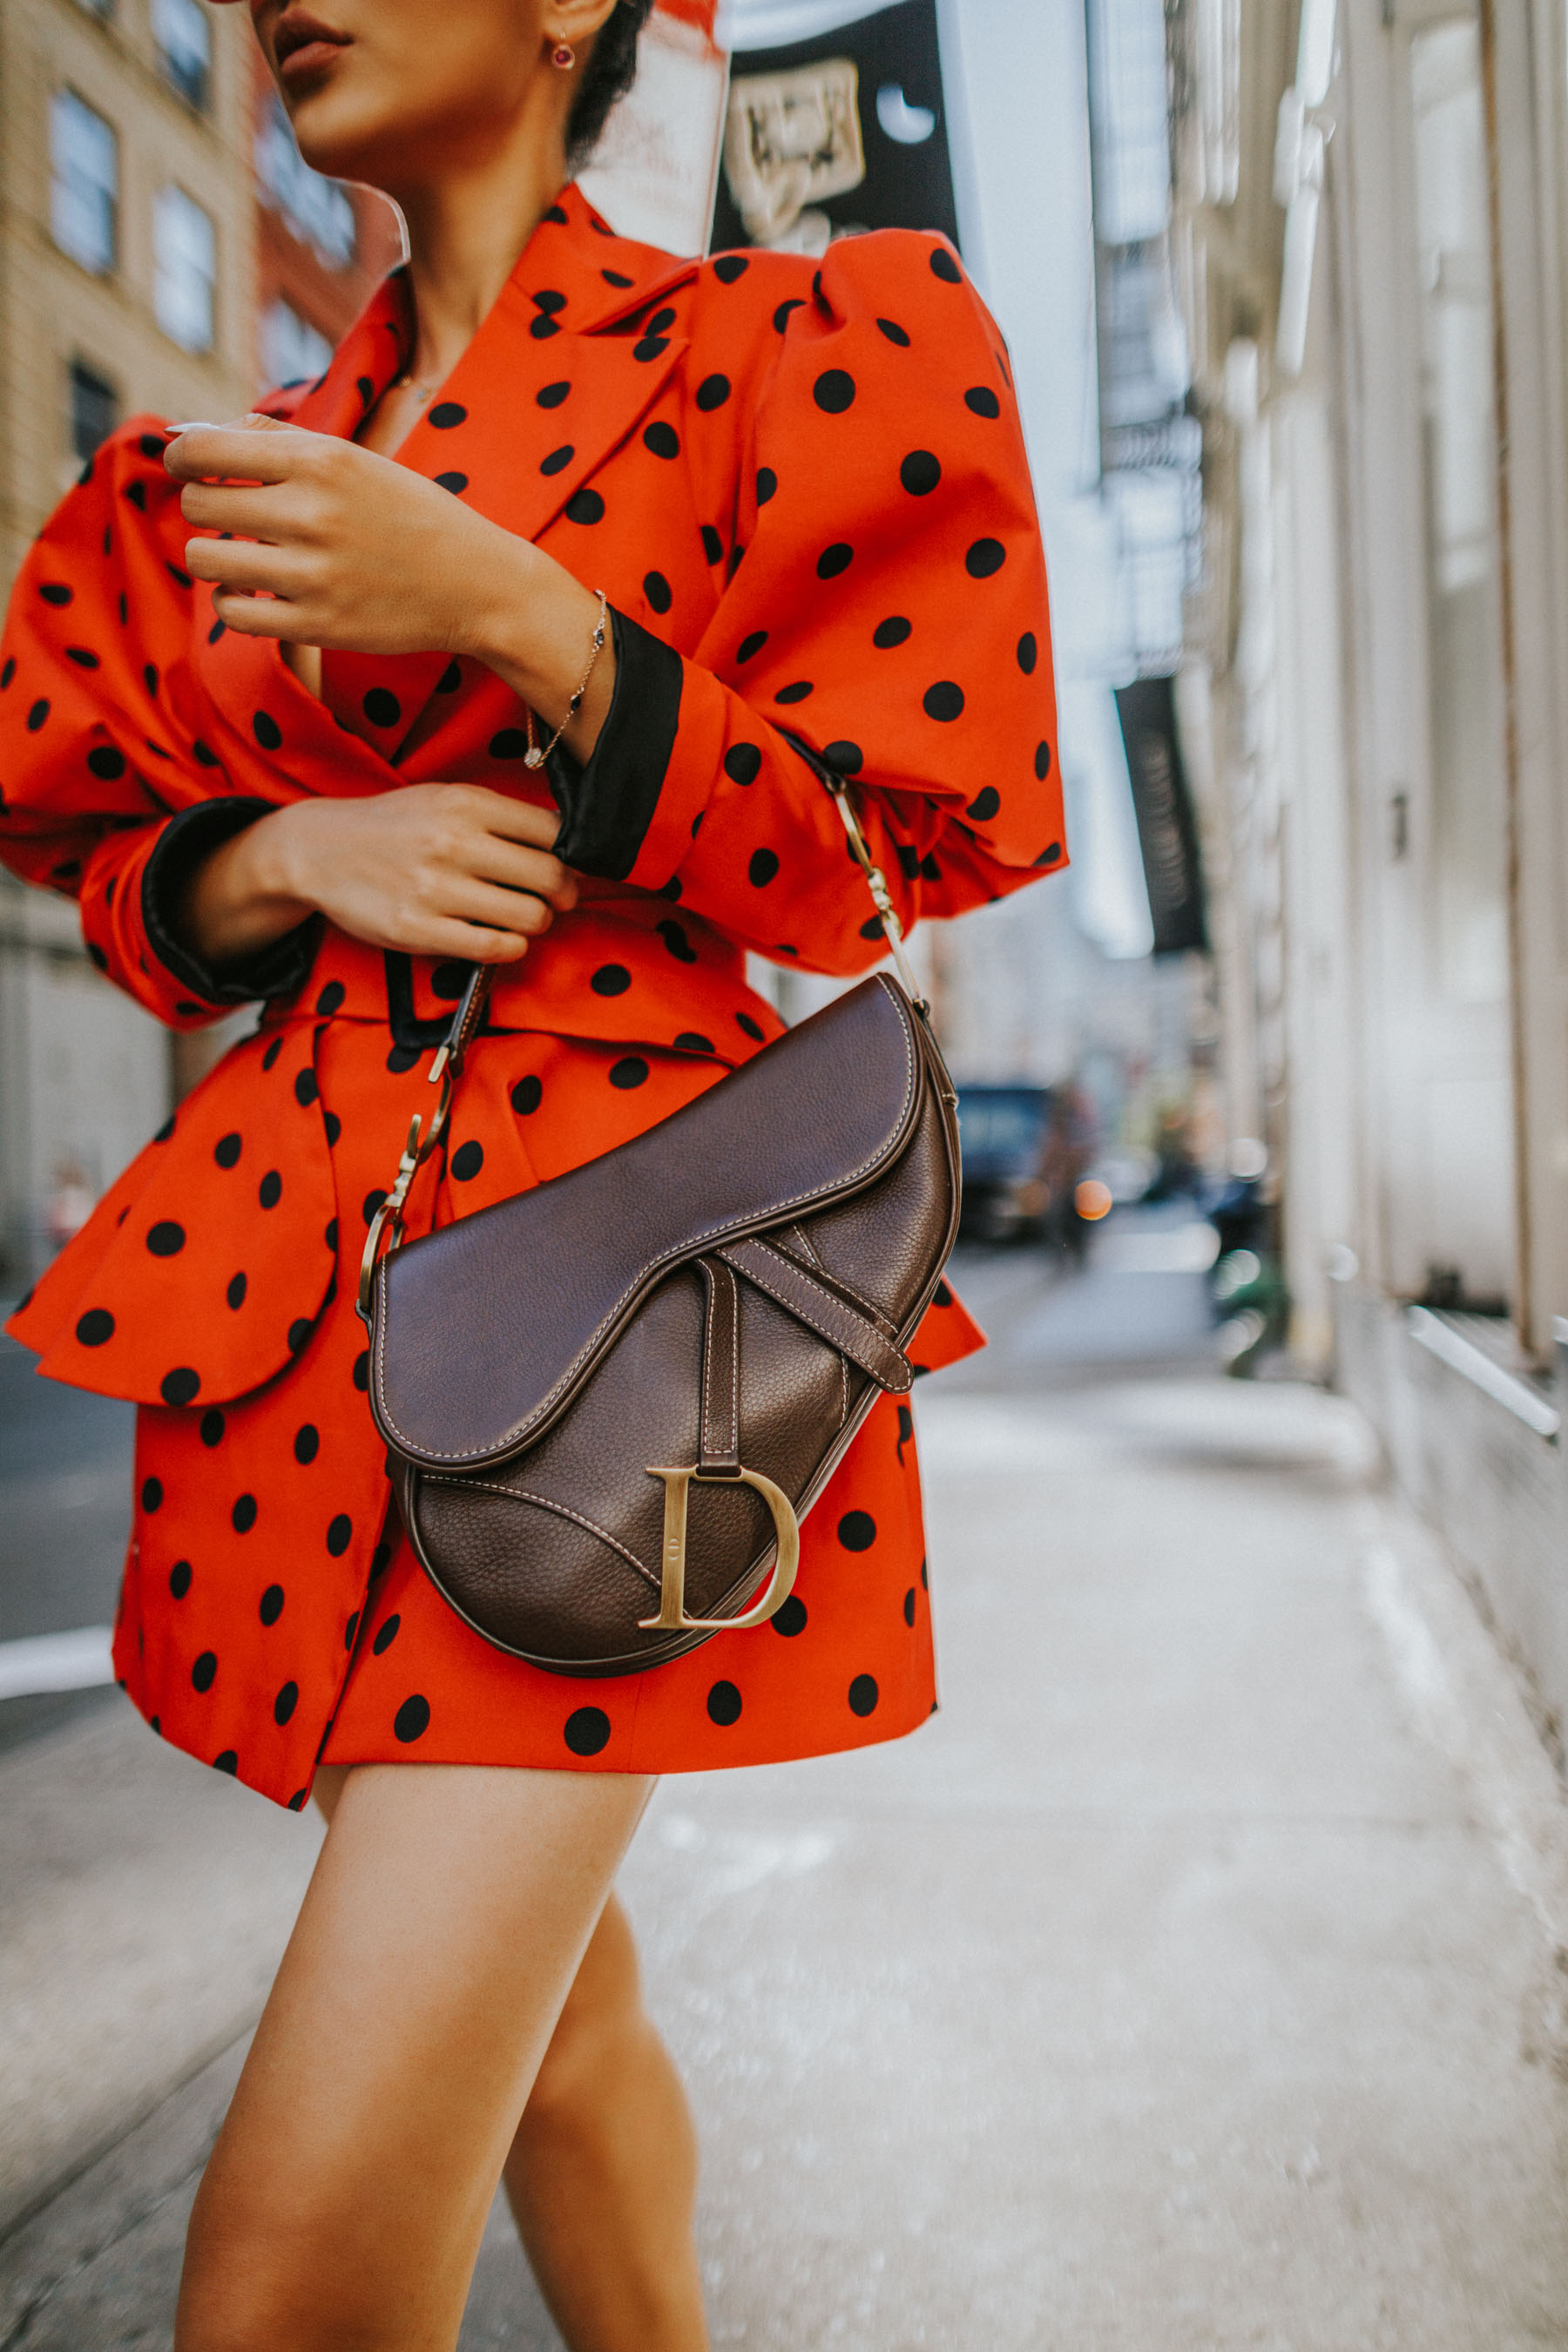 bf18801a6d MEET 9 LUXURY HANDBAGS TO INVEST IN FOR 2018